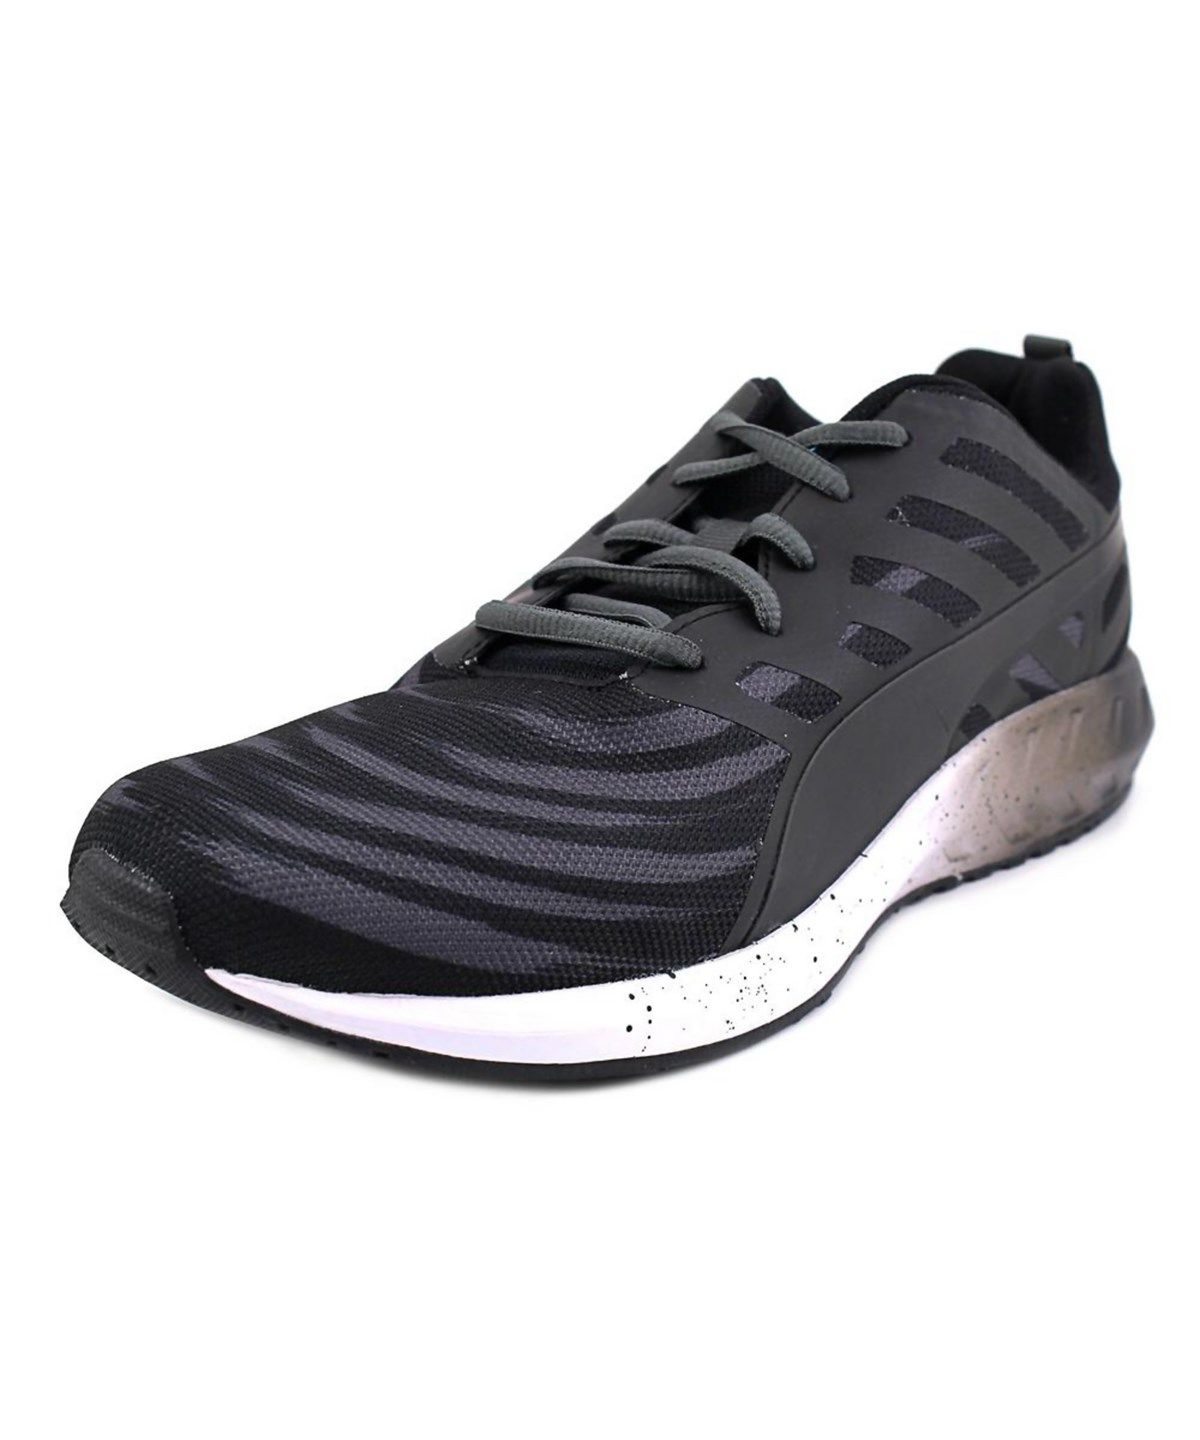 15390ac84706 PUMA PUMA FLARE GRAPHIC MEN ROUND TOE SYNTHETIC BLACK SNEAKERS .  puma   shoes  sneakers